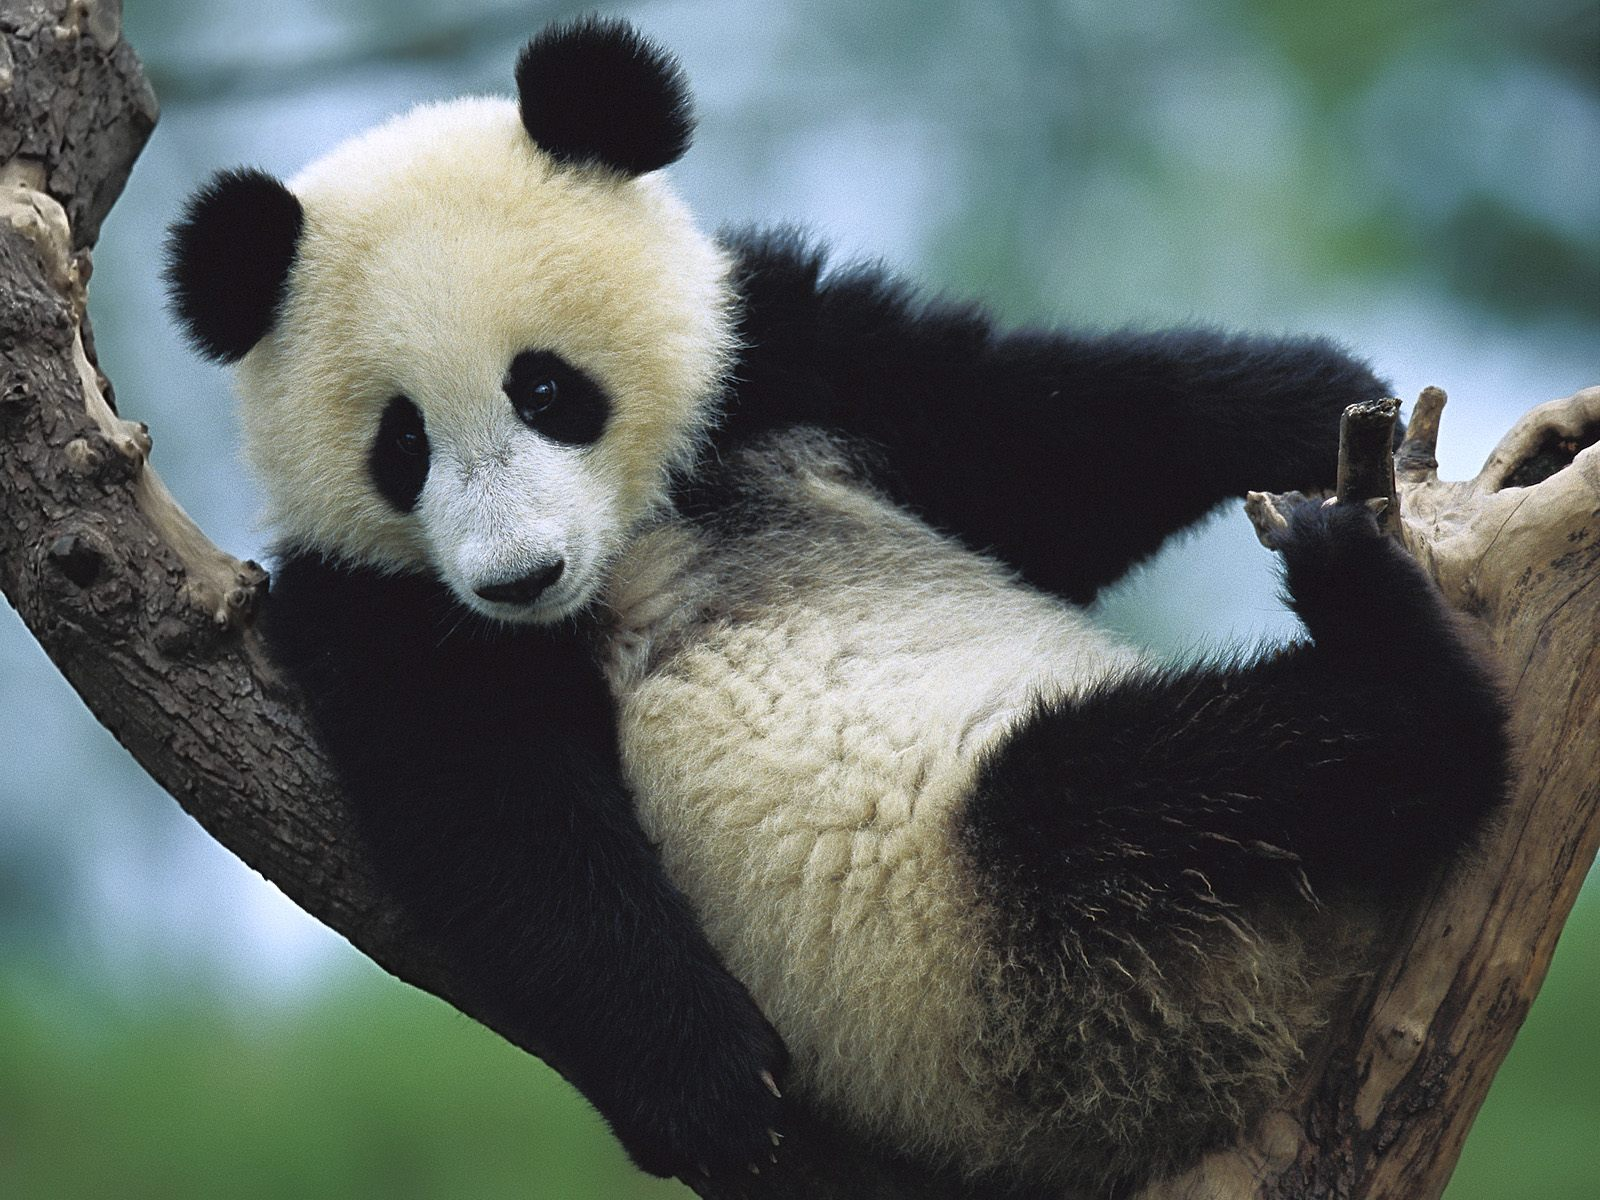 Download Animals wallpaper Panda Wallpaper 1600x1200